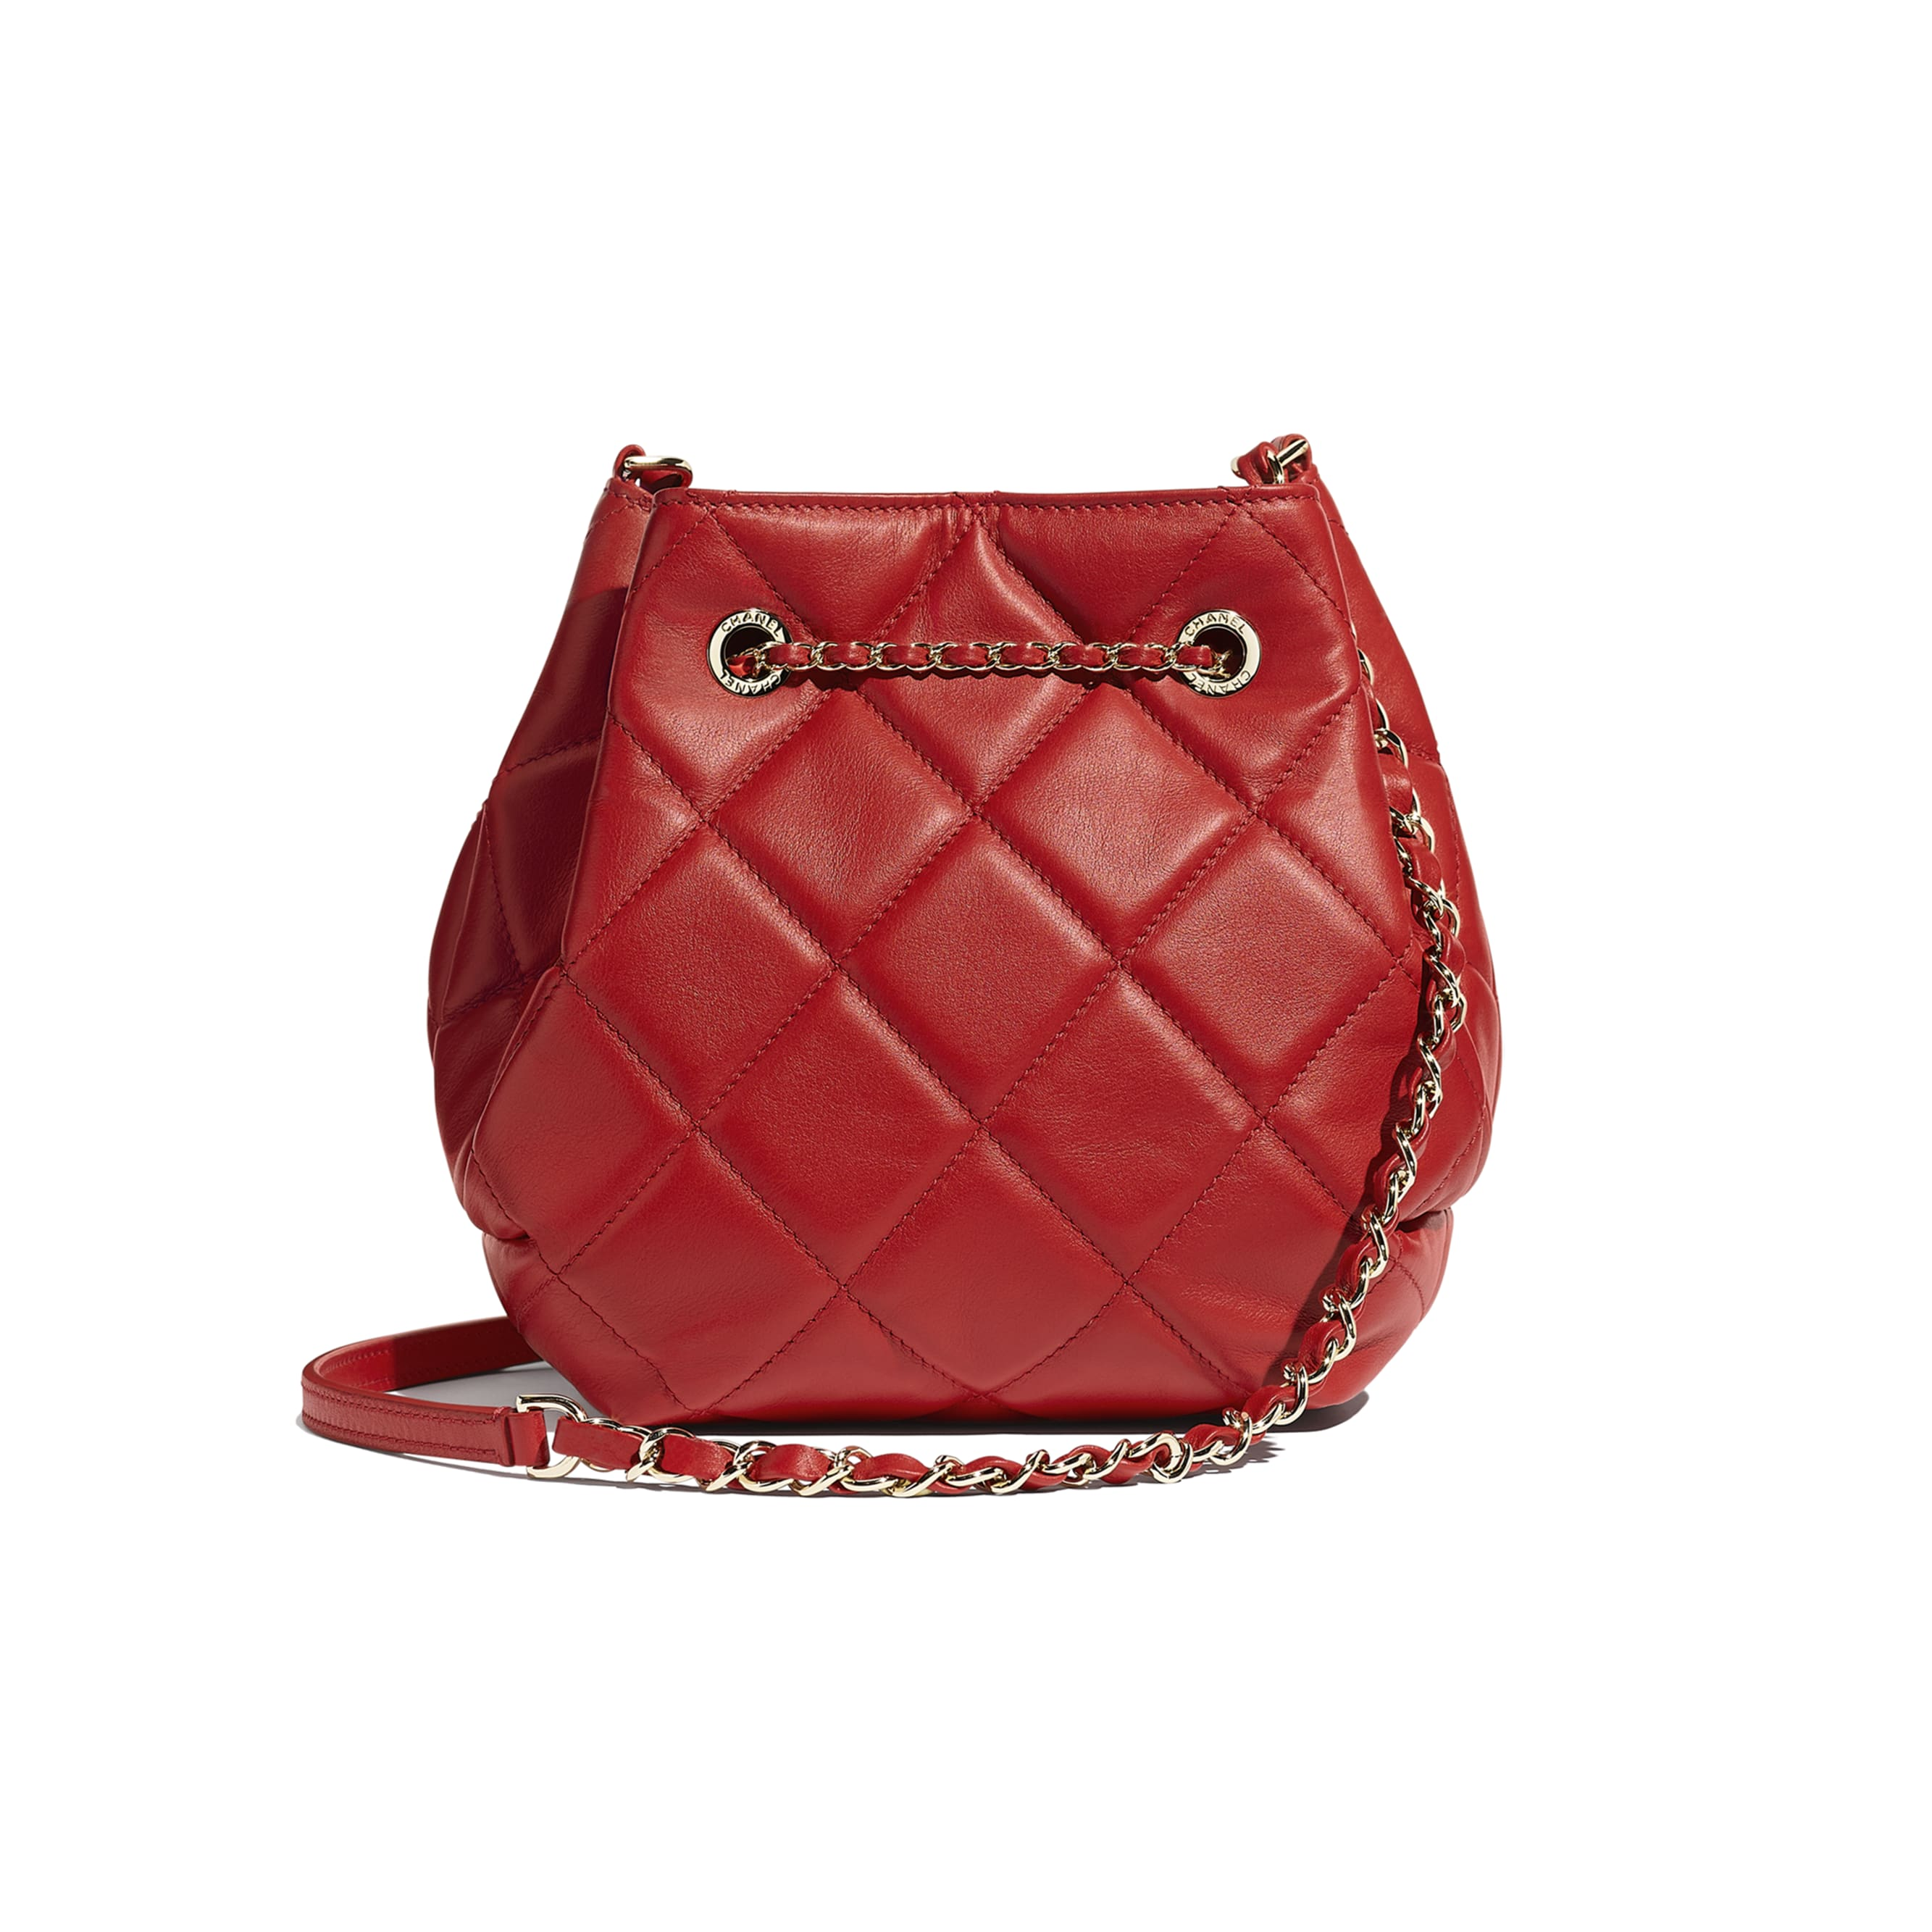 Drawstring Bag - Red - Lambskin & Gold-Tone Metal - CHANEL - Alternative view - see standard sized version